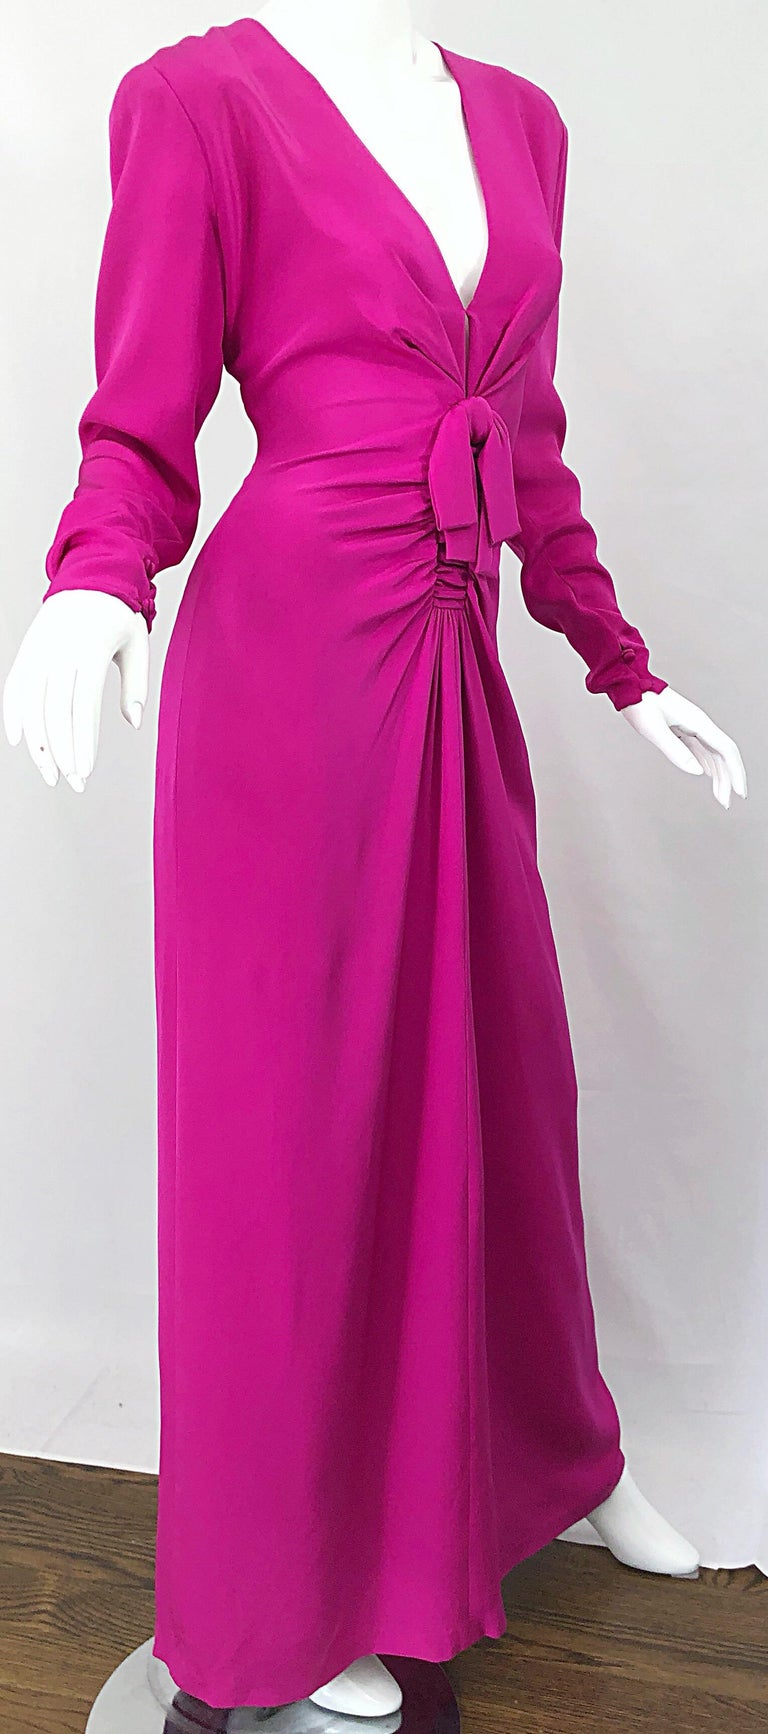 Vintage Bill Blass Size 10 Hot Pink Silk Jersey Cut - Out 1980s 80s Evening Gown For Sale 11